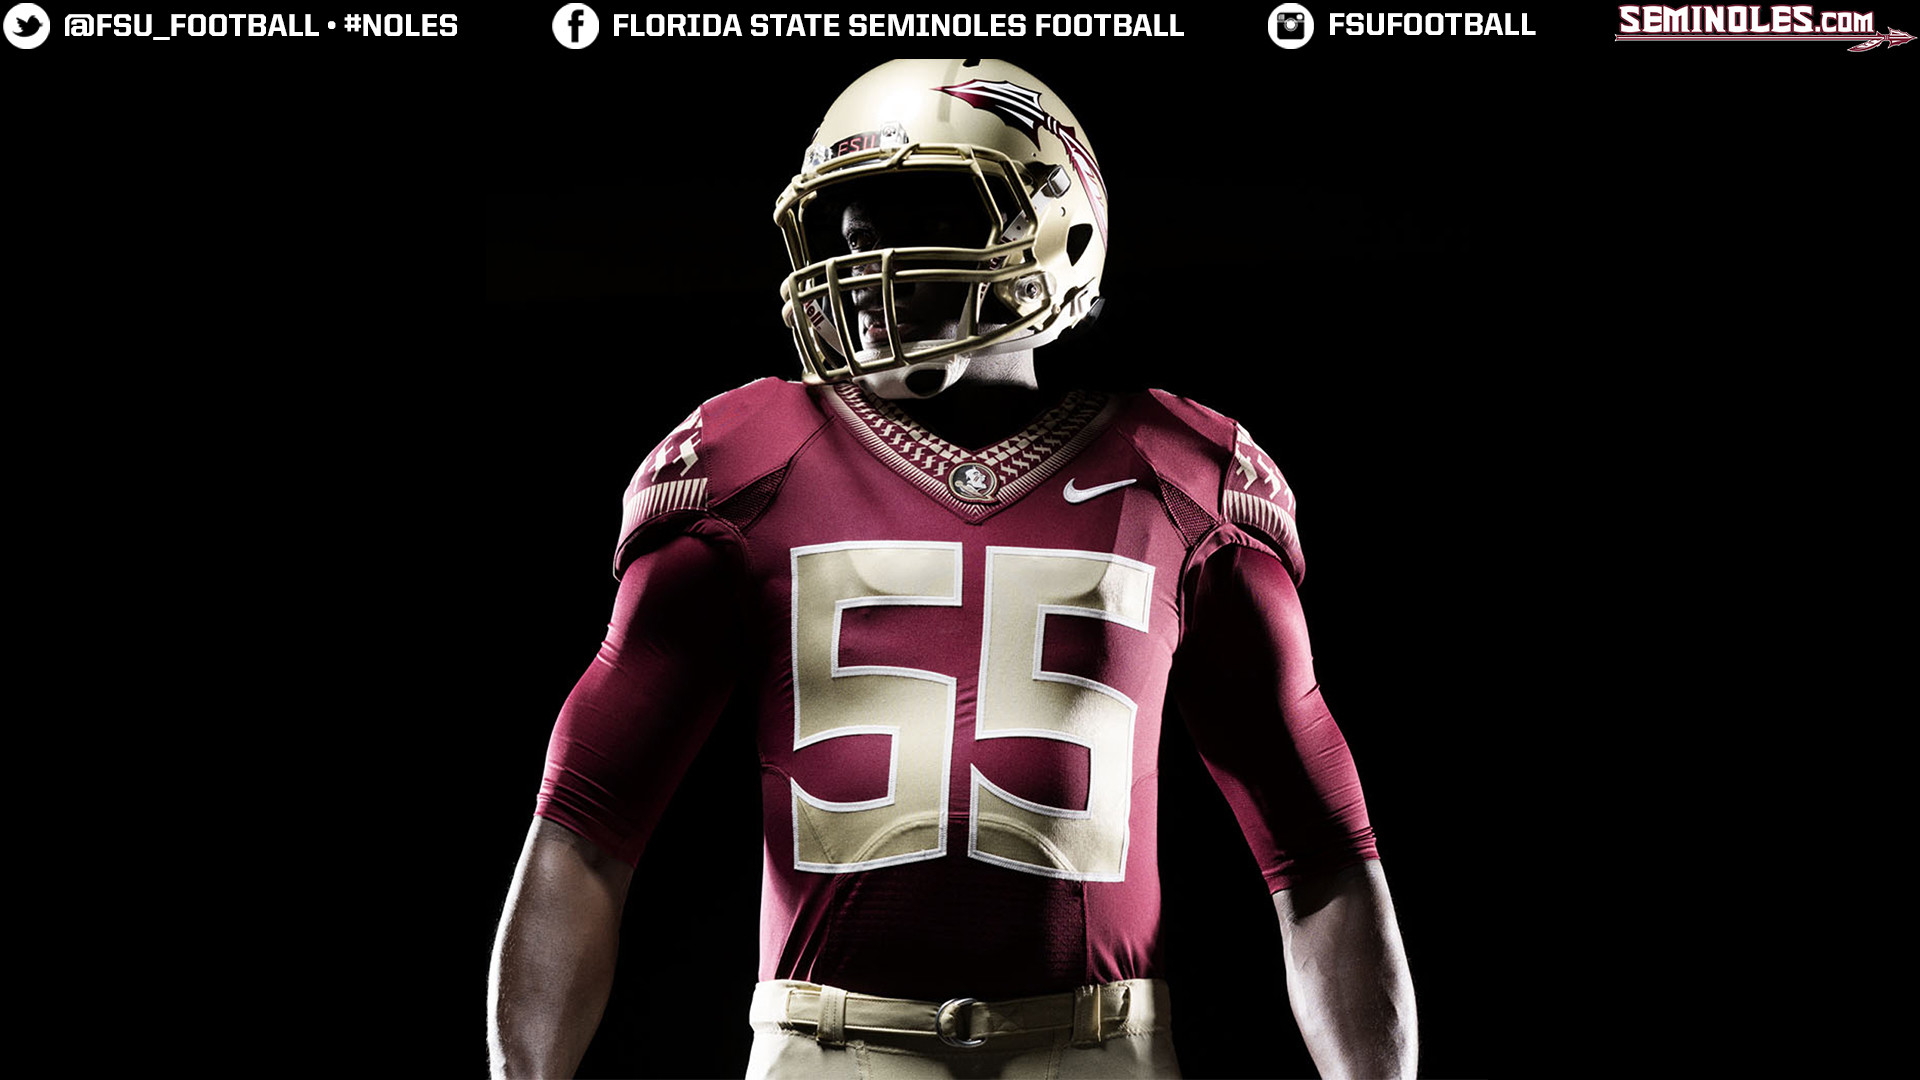 Florida state seminoles wallpaper 76 images 1920x1080 florida state football wallpaper voltagebd